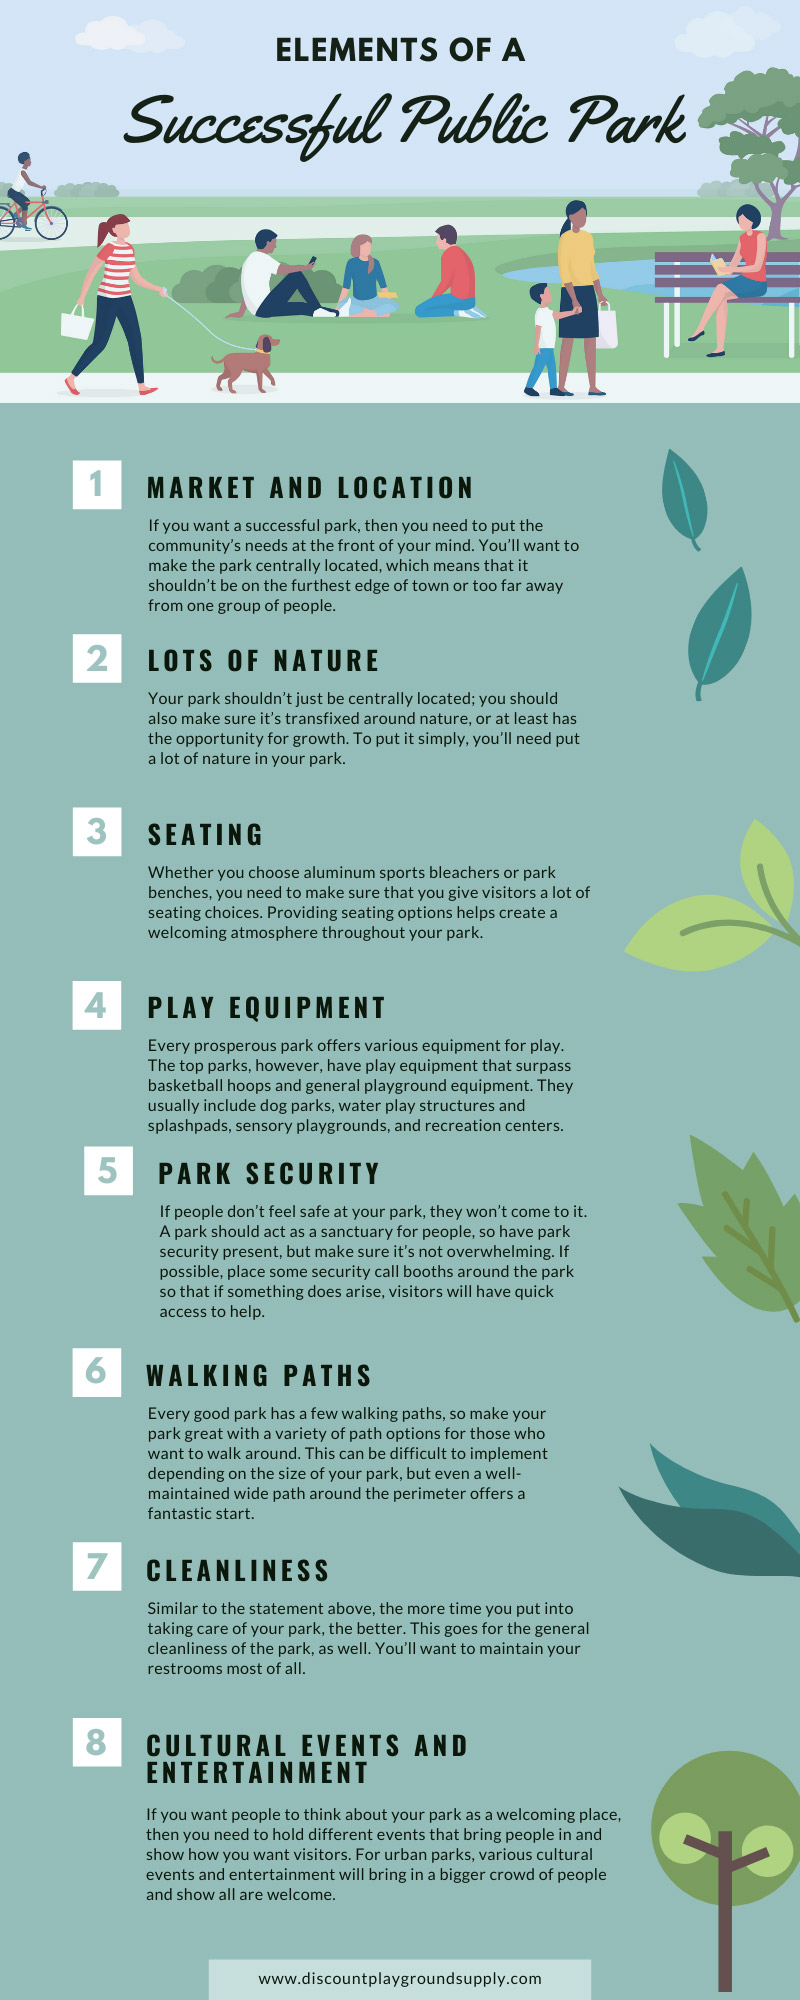 Elements of a Successful Public Park infographic